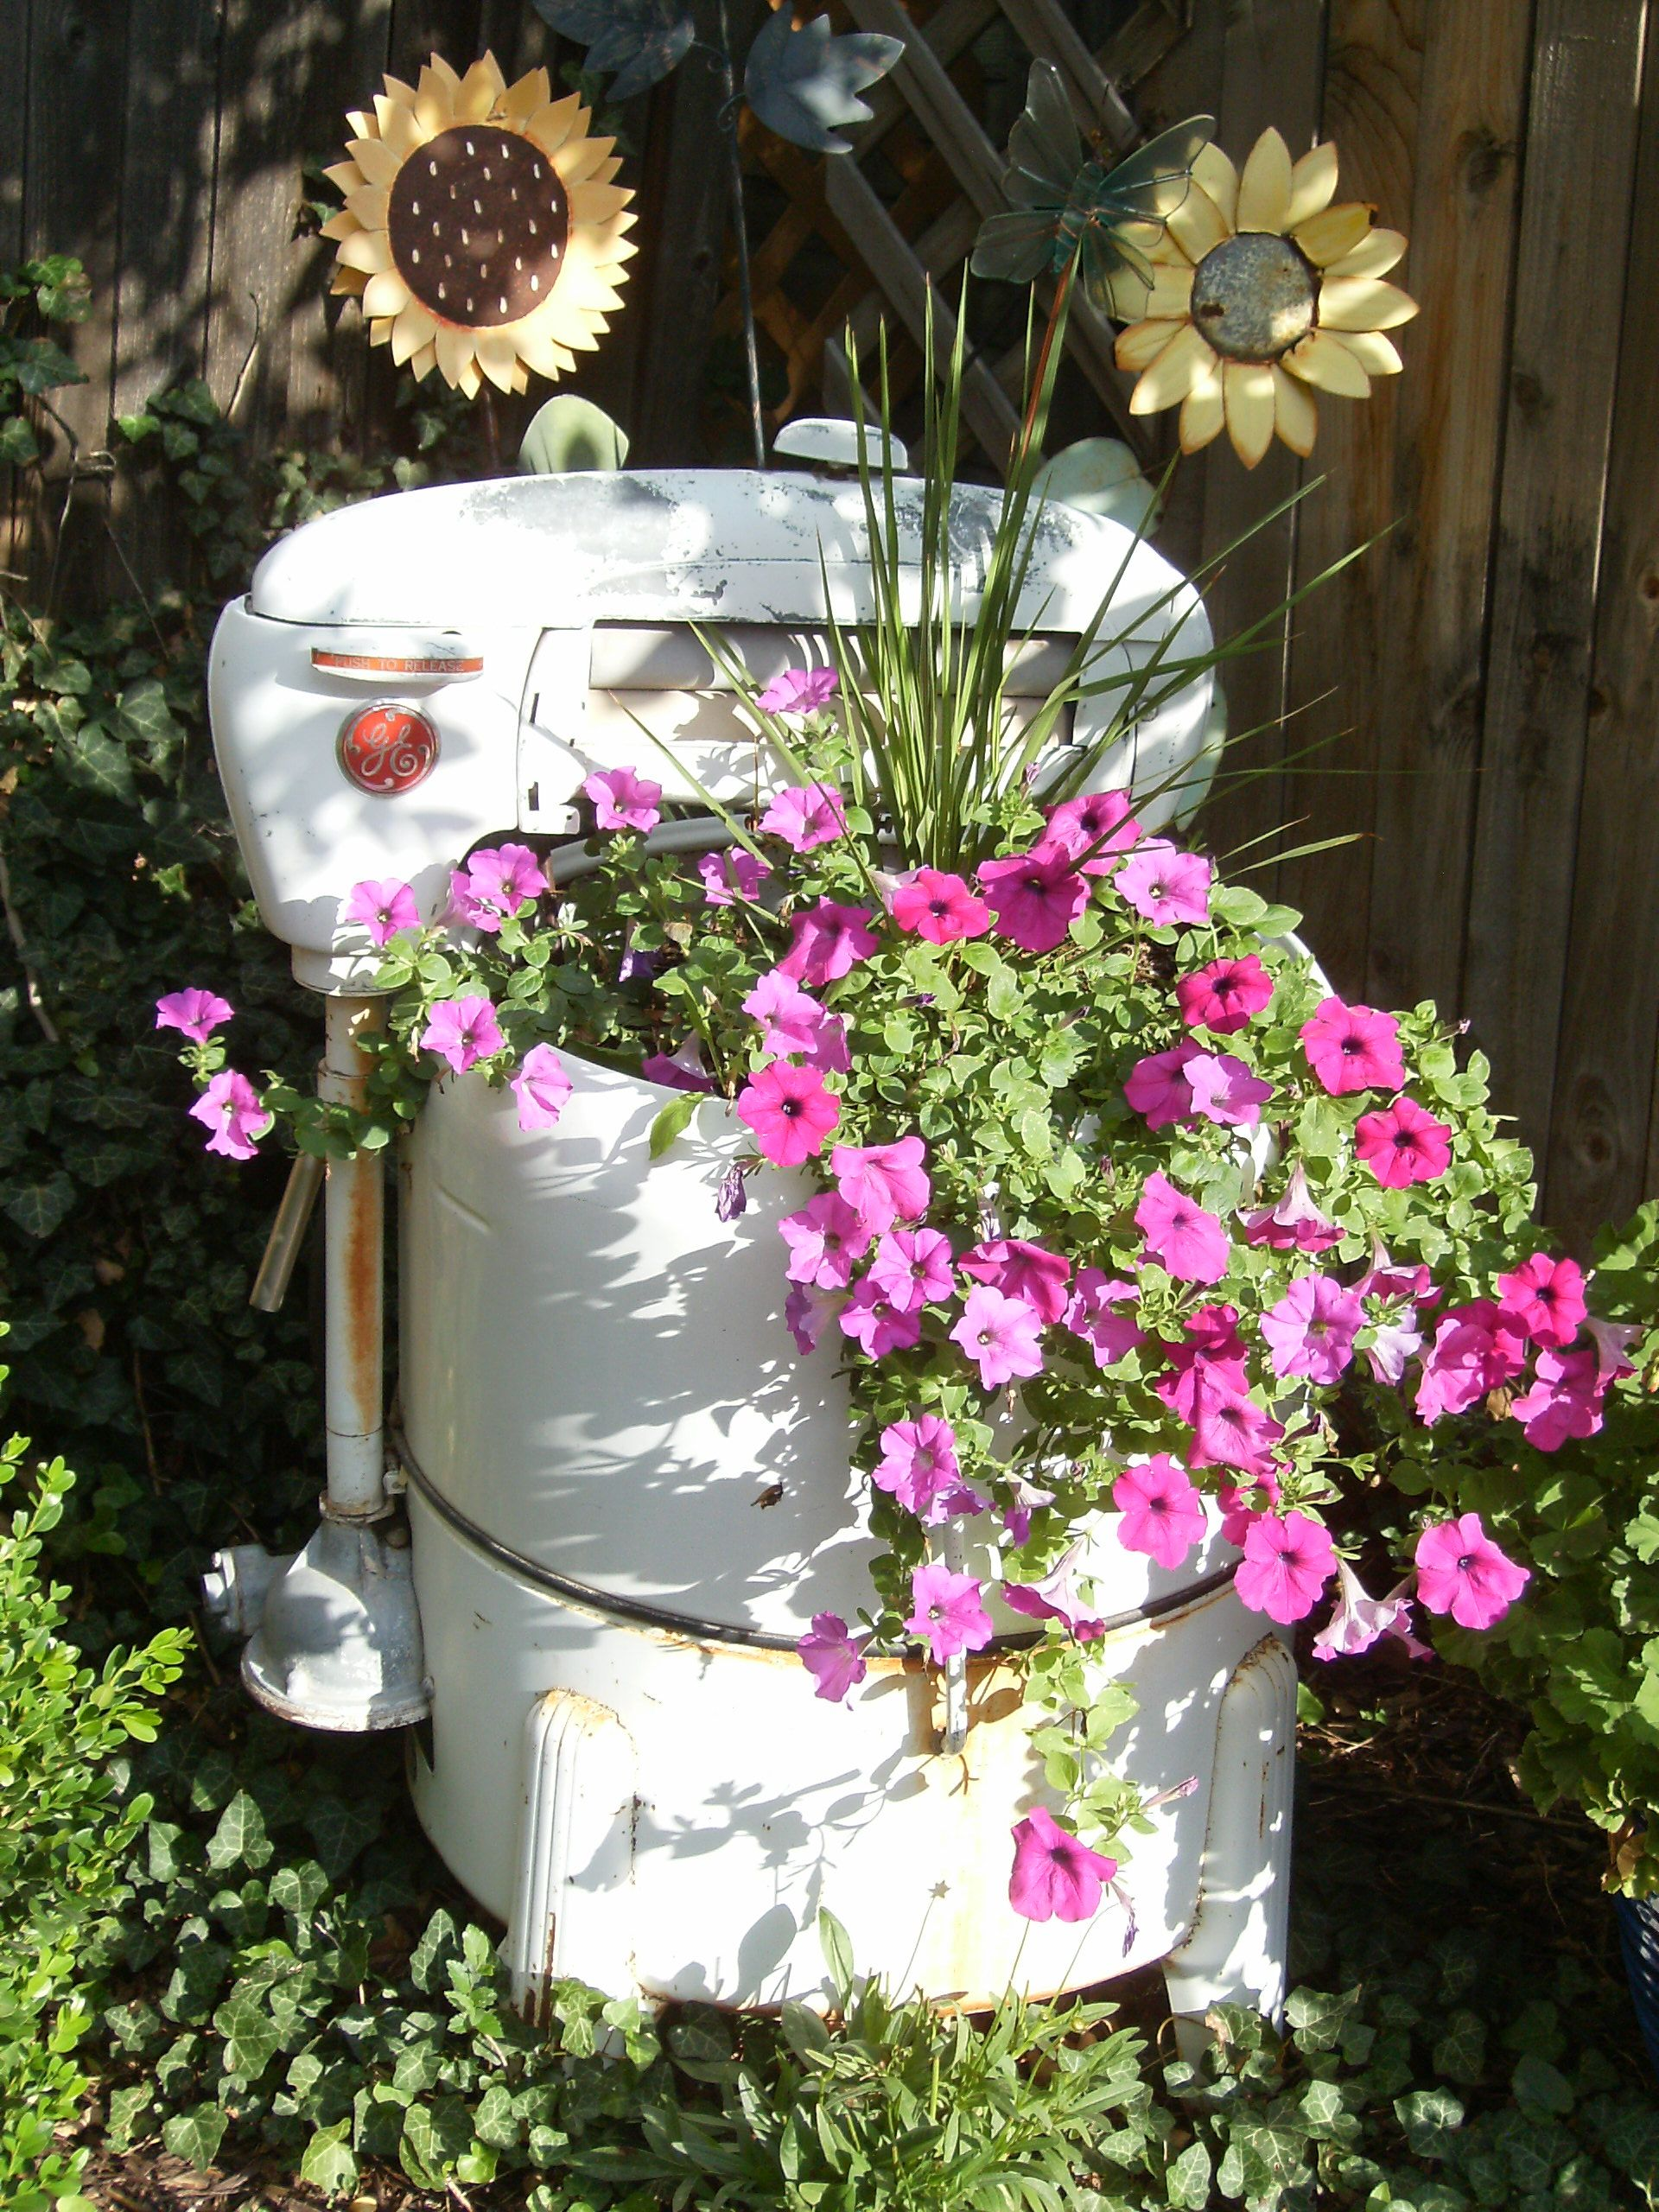 Got this old washing machine for a steel at an estate sale and  filled with wave petunias